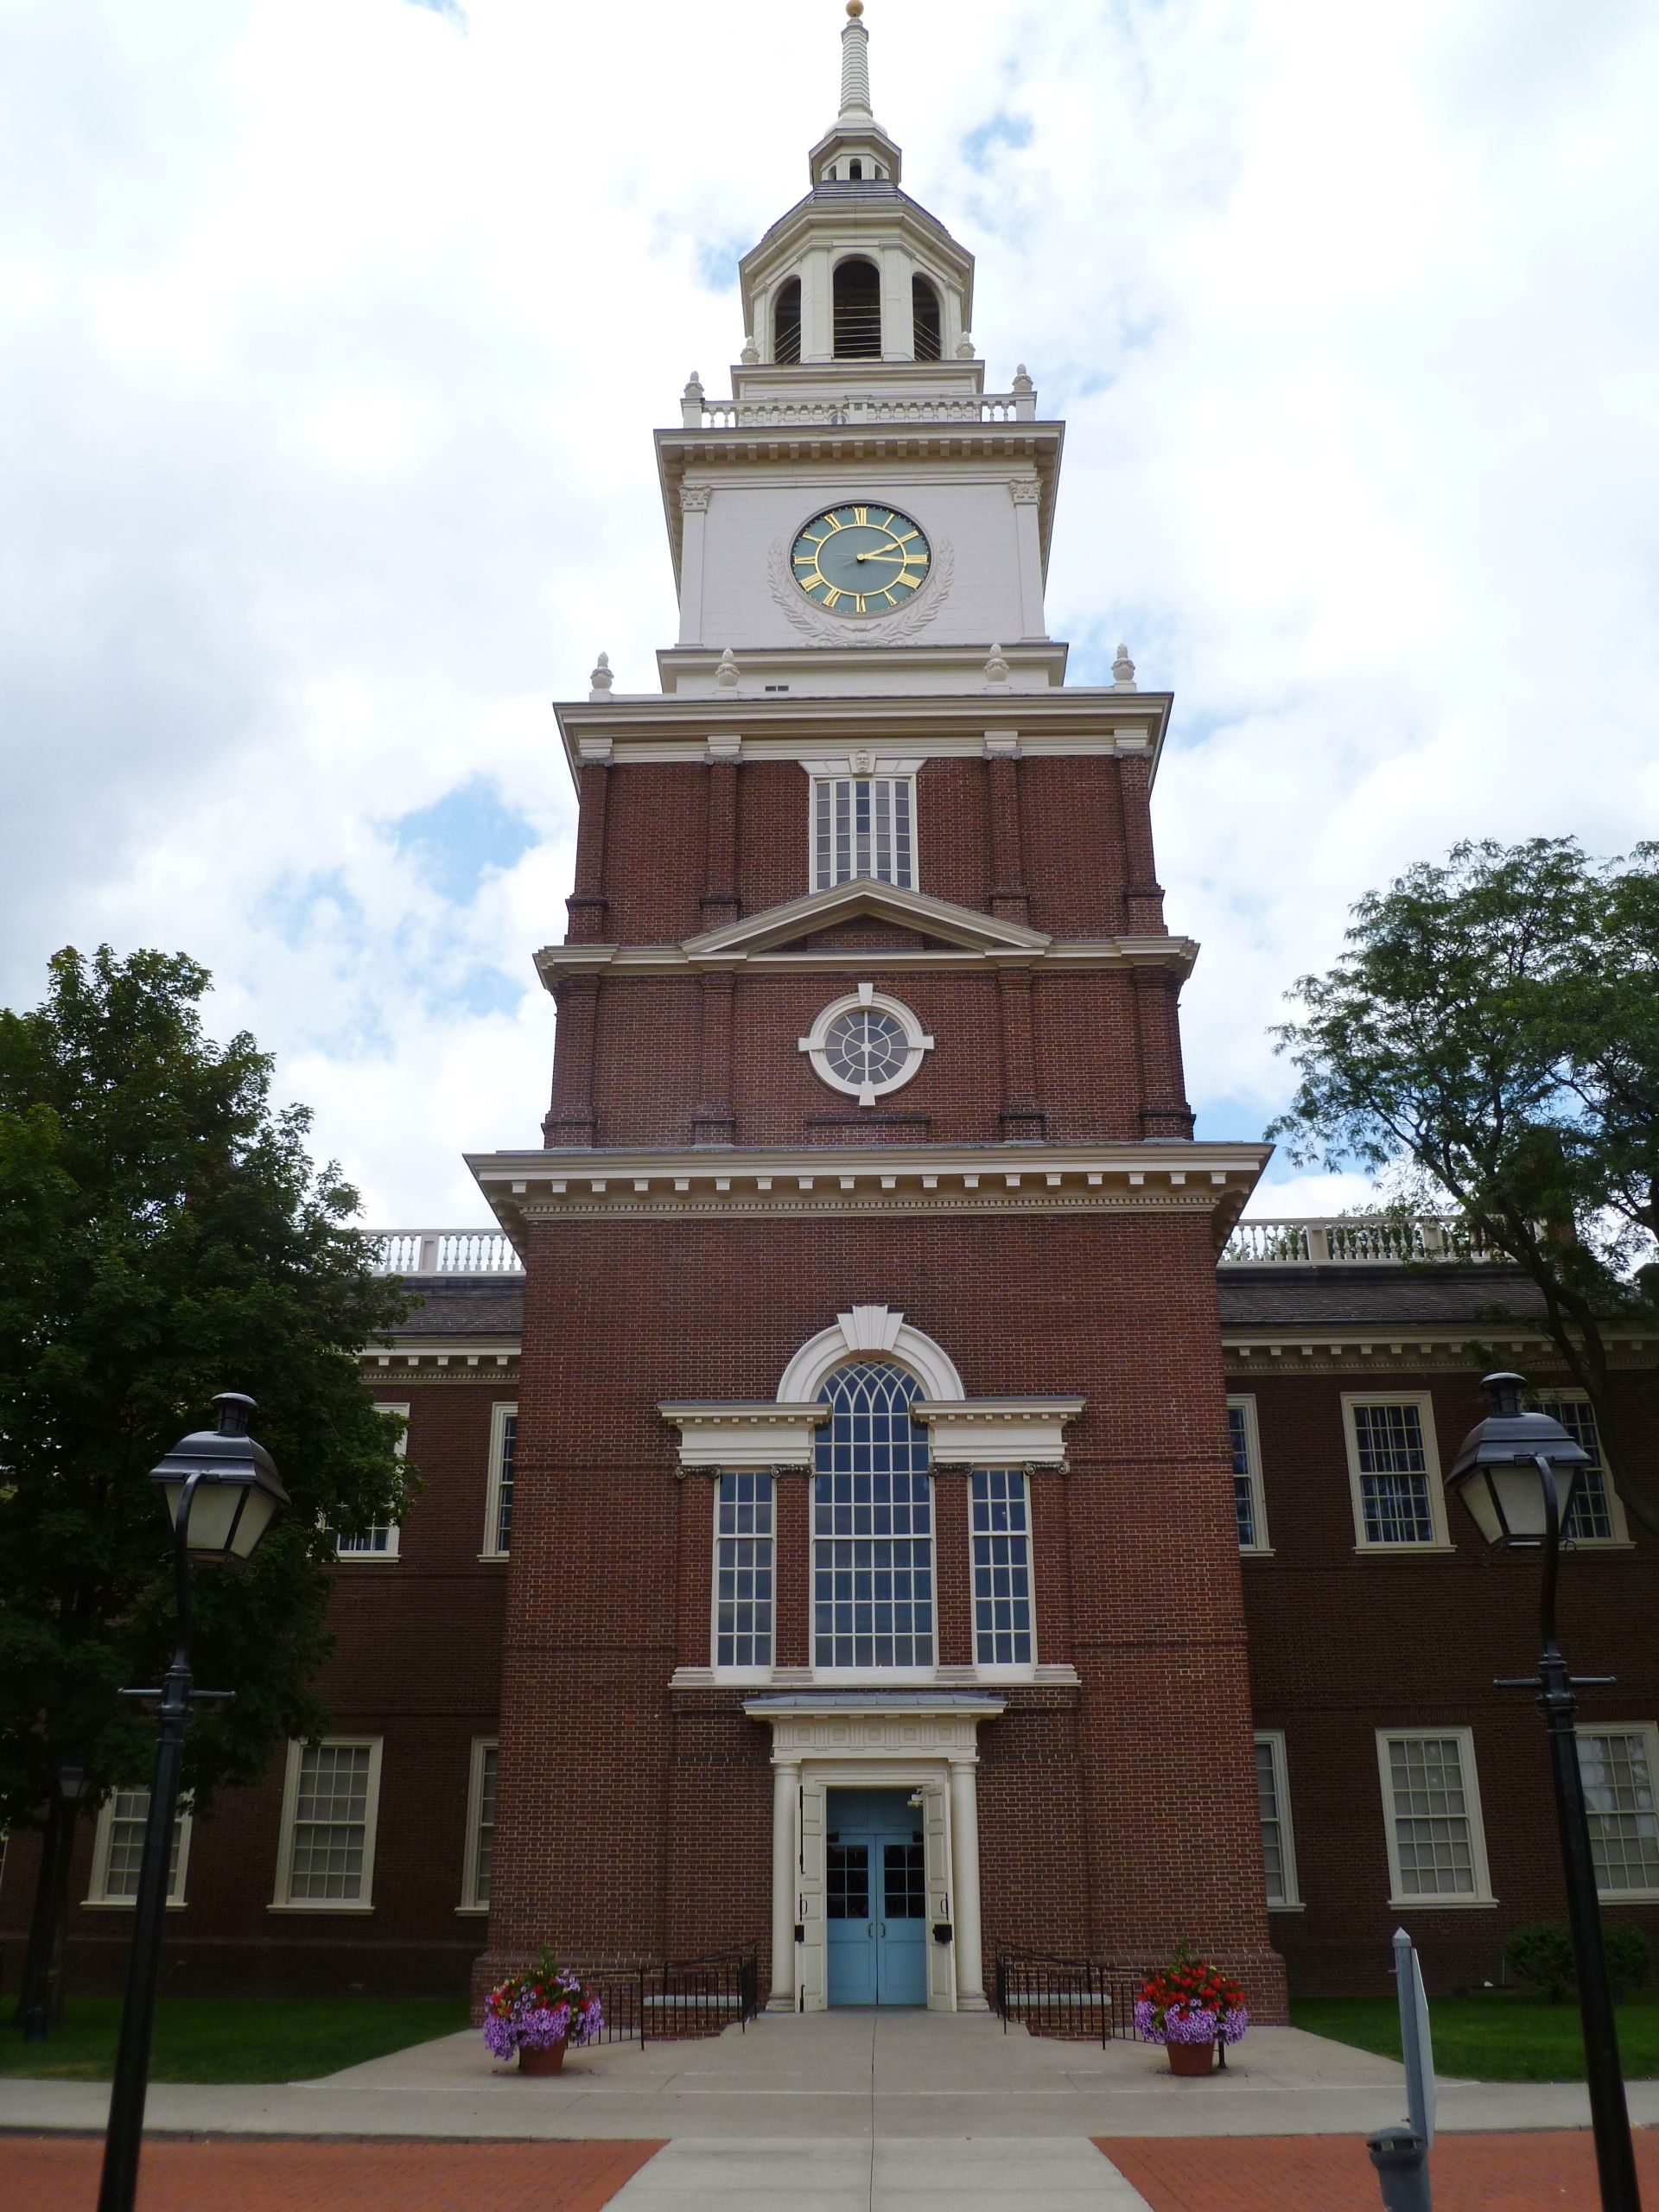 The clocktower facade of the henry ford museum in dearborn michigan is a replica of independence hall in philadelphia pennsylvania